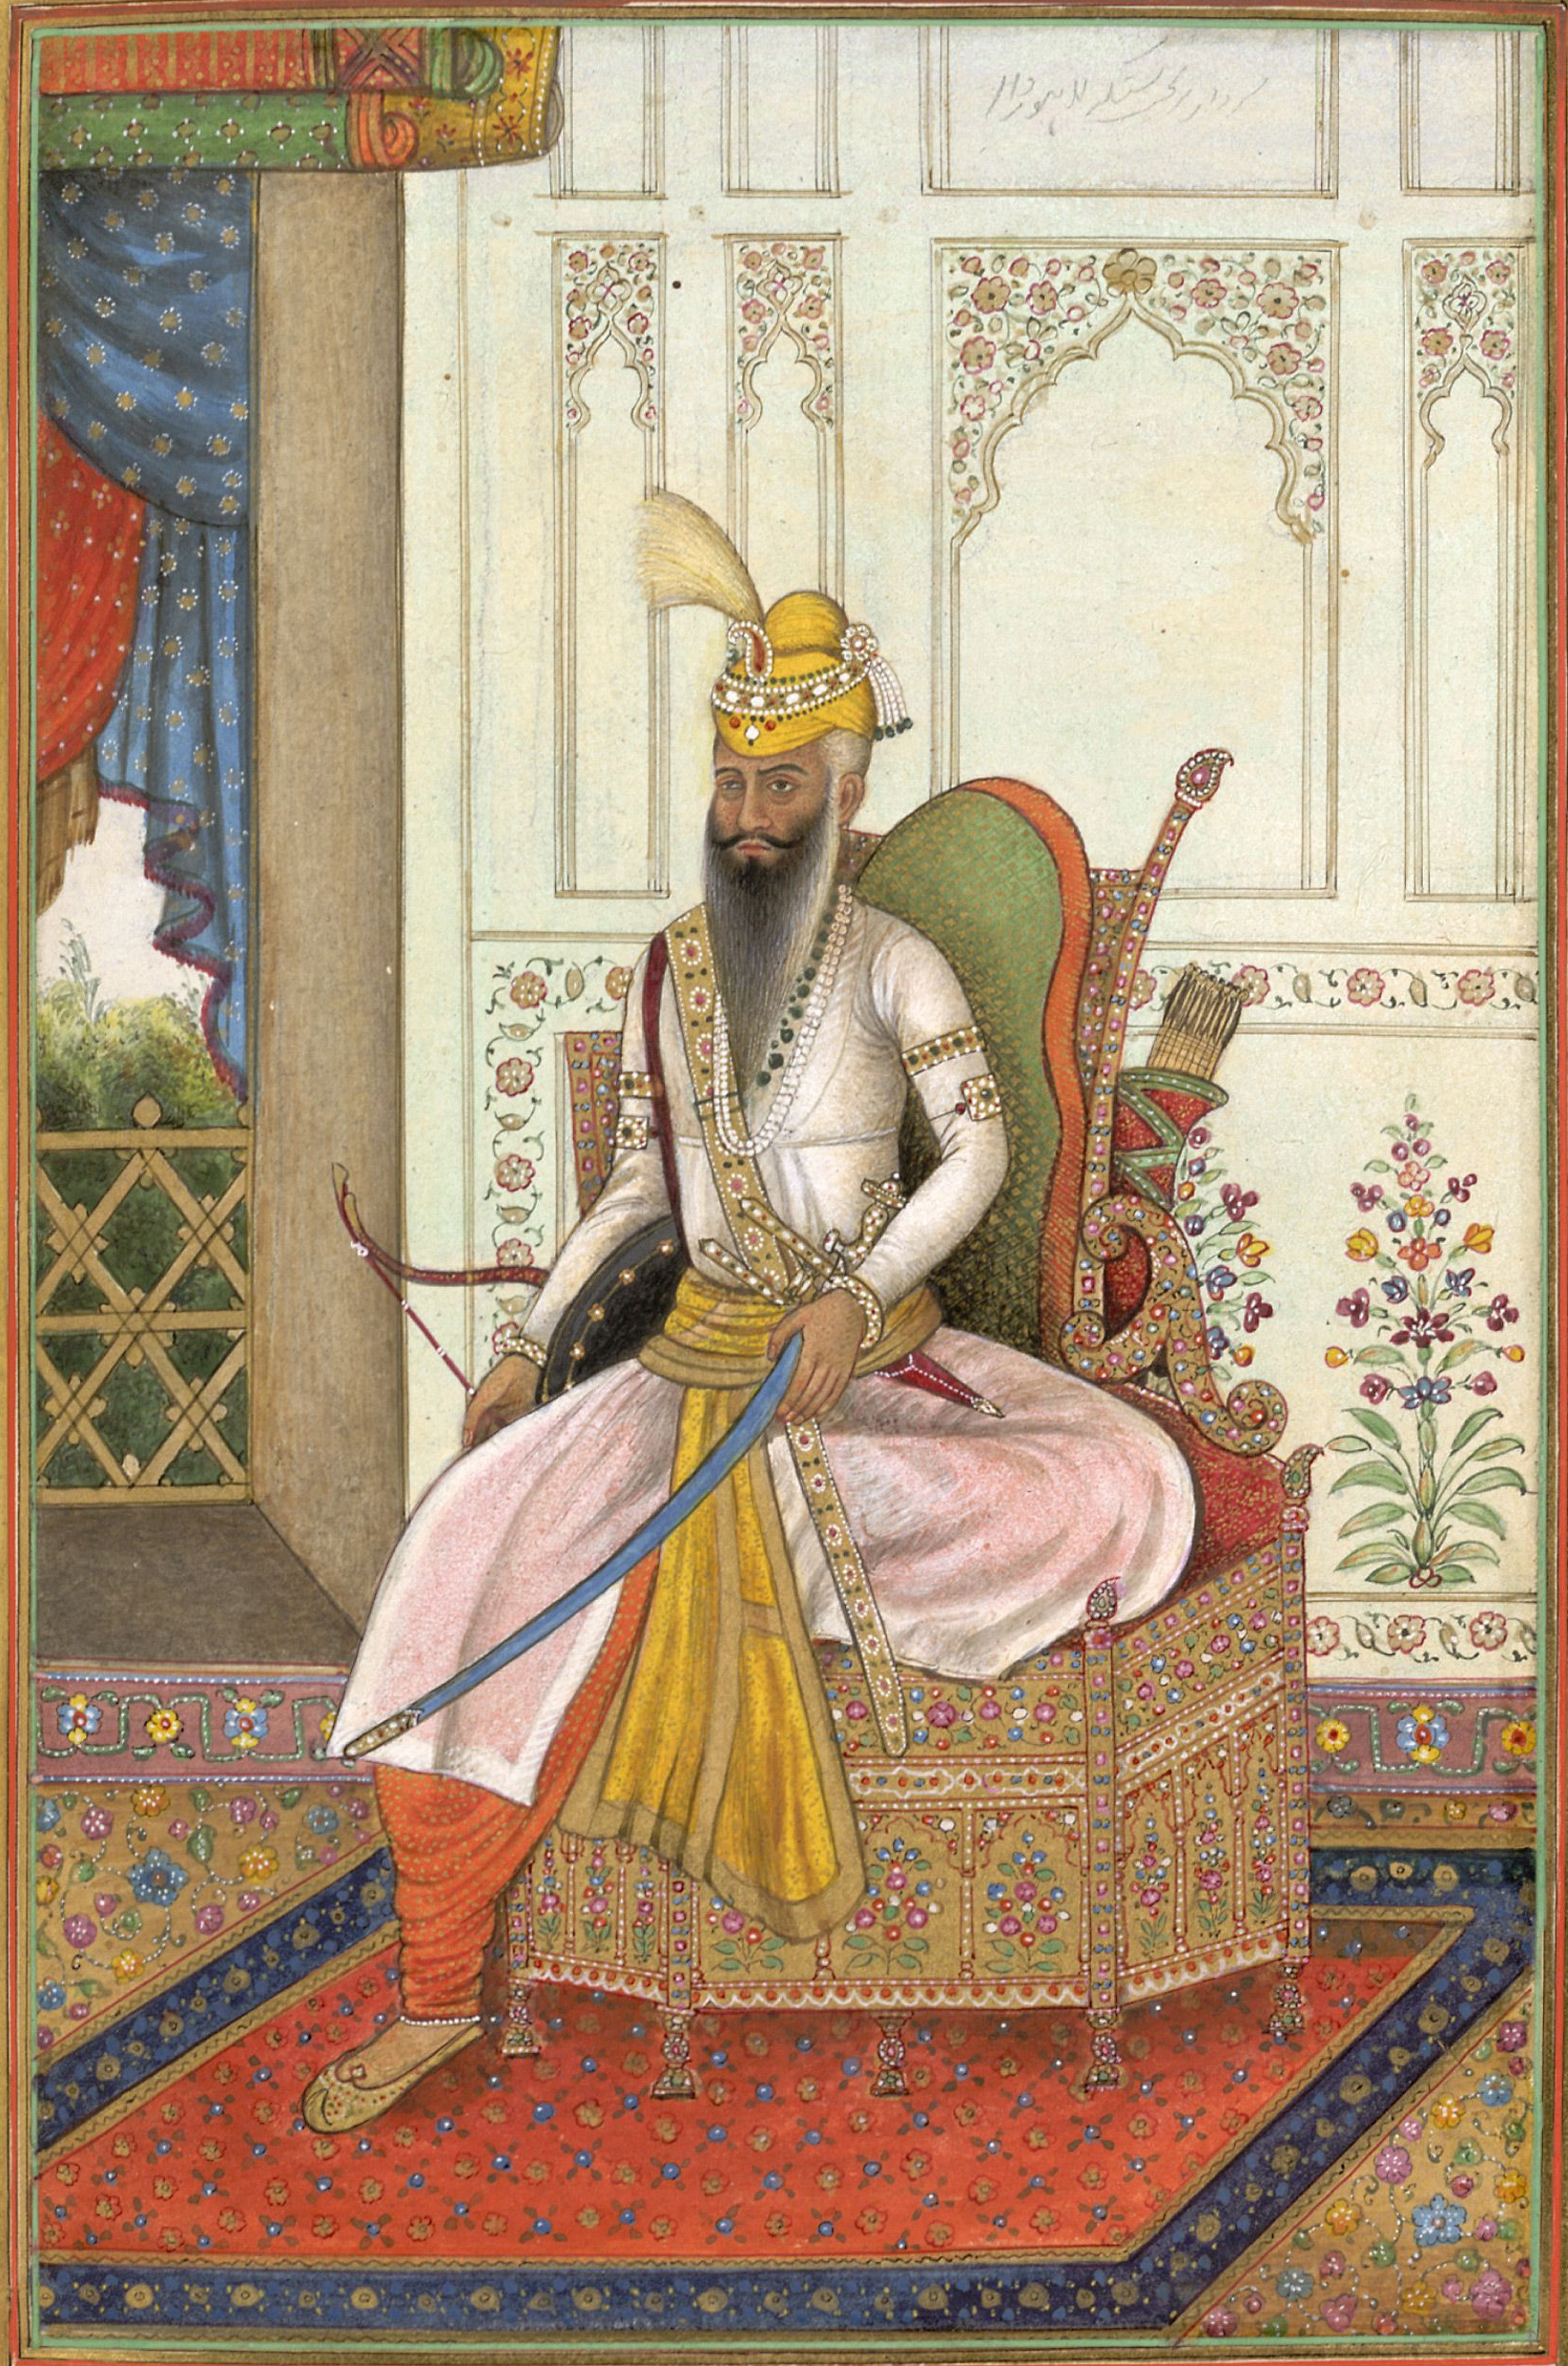 a history of maharaja ranjit singh Maharaja ranjit singh (13 november 1780 – 27 june 1839) was the founder of the sikh empire, which came to power in the indian subcontinent.